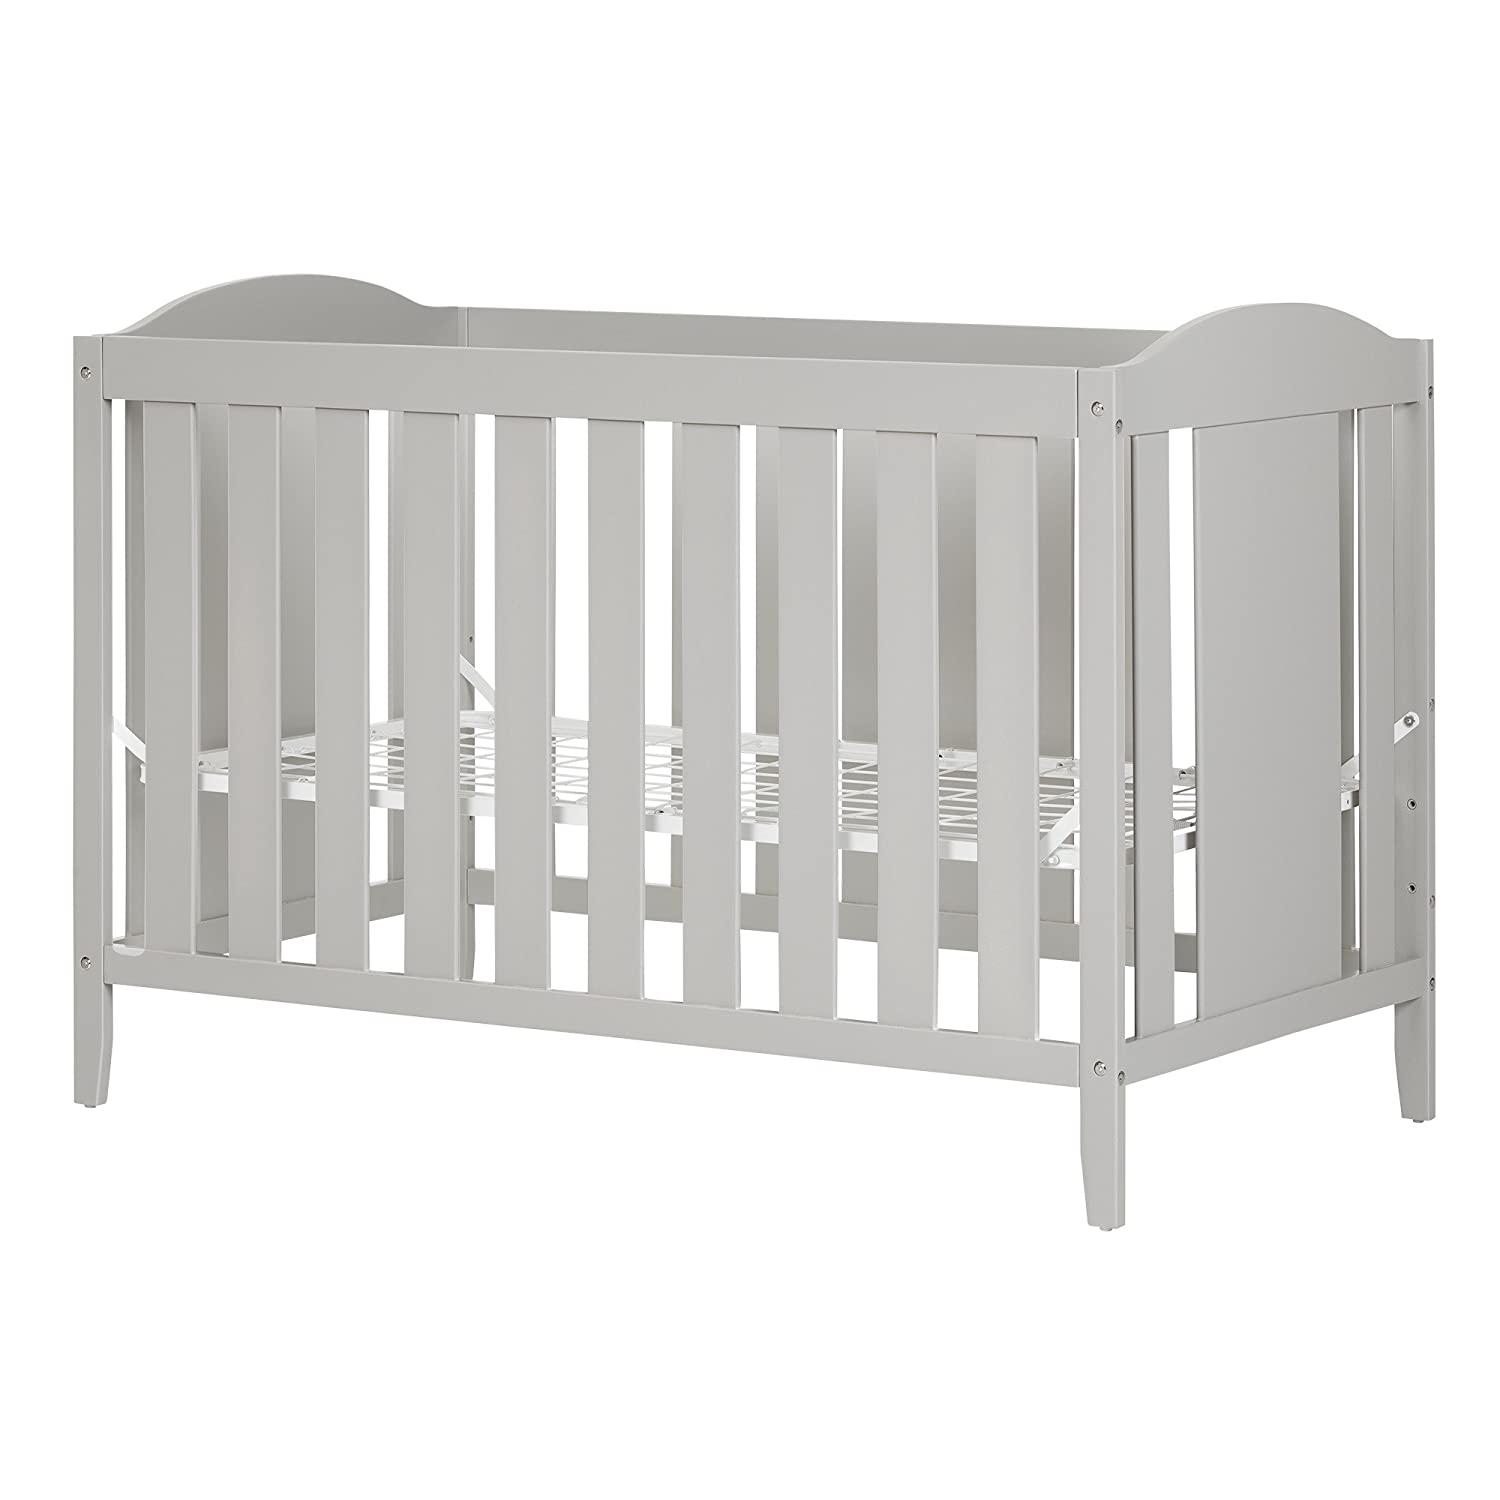 South Shore Furniture Cookie Crib and Toddler's Bed, Soft Gray 10719